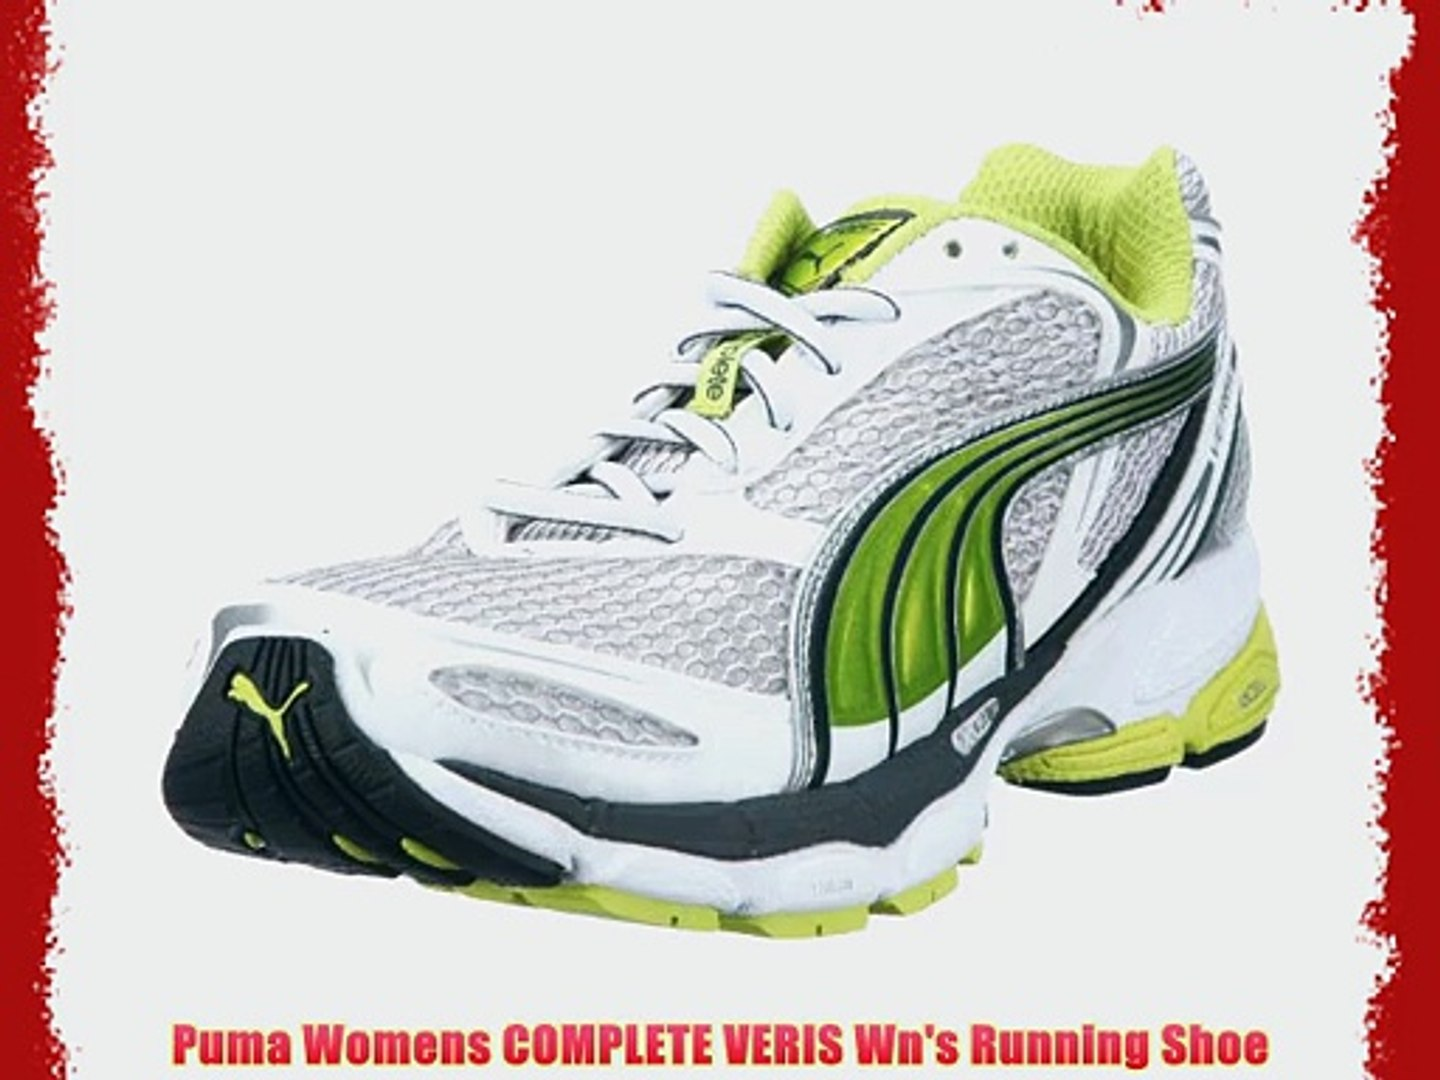 Puma Women's Complete Ventis 2 Running Shoe | Running shoes